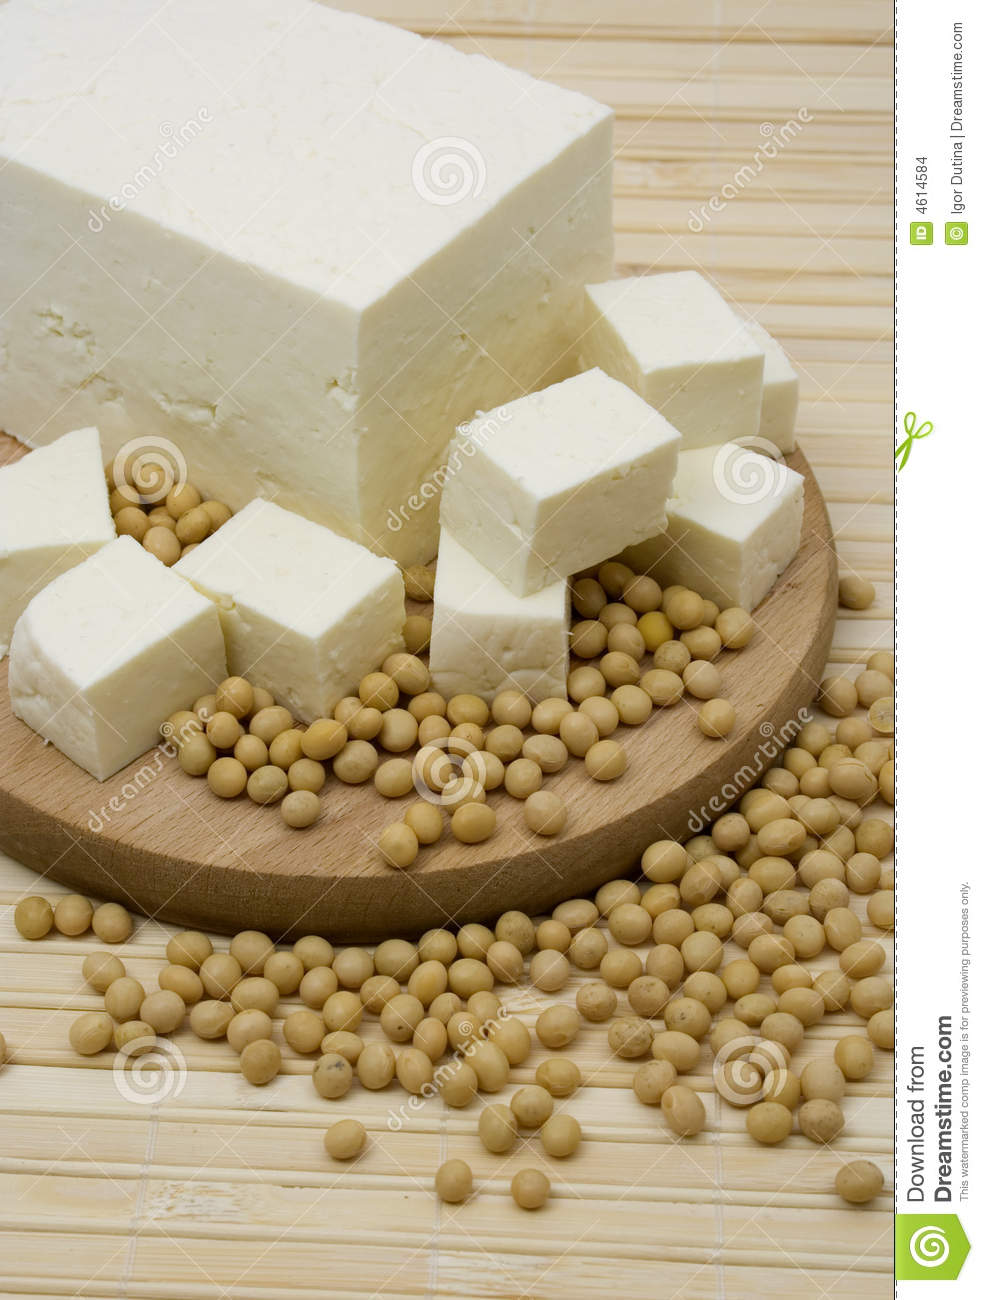 Tofu cheese and soy beans stock photo. Image of soybean